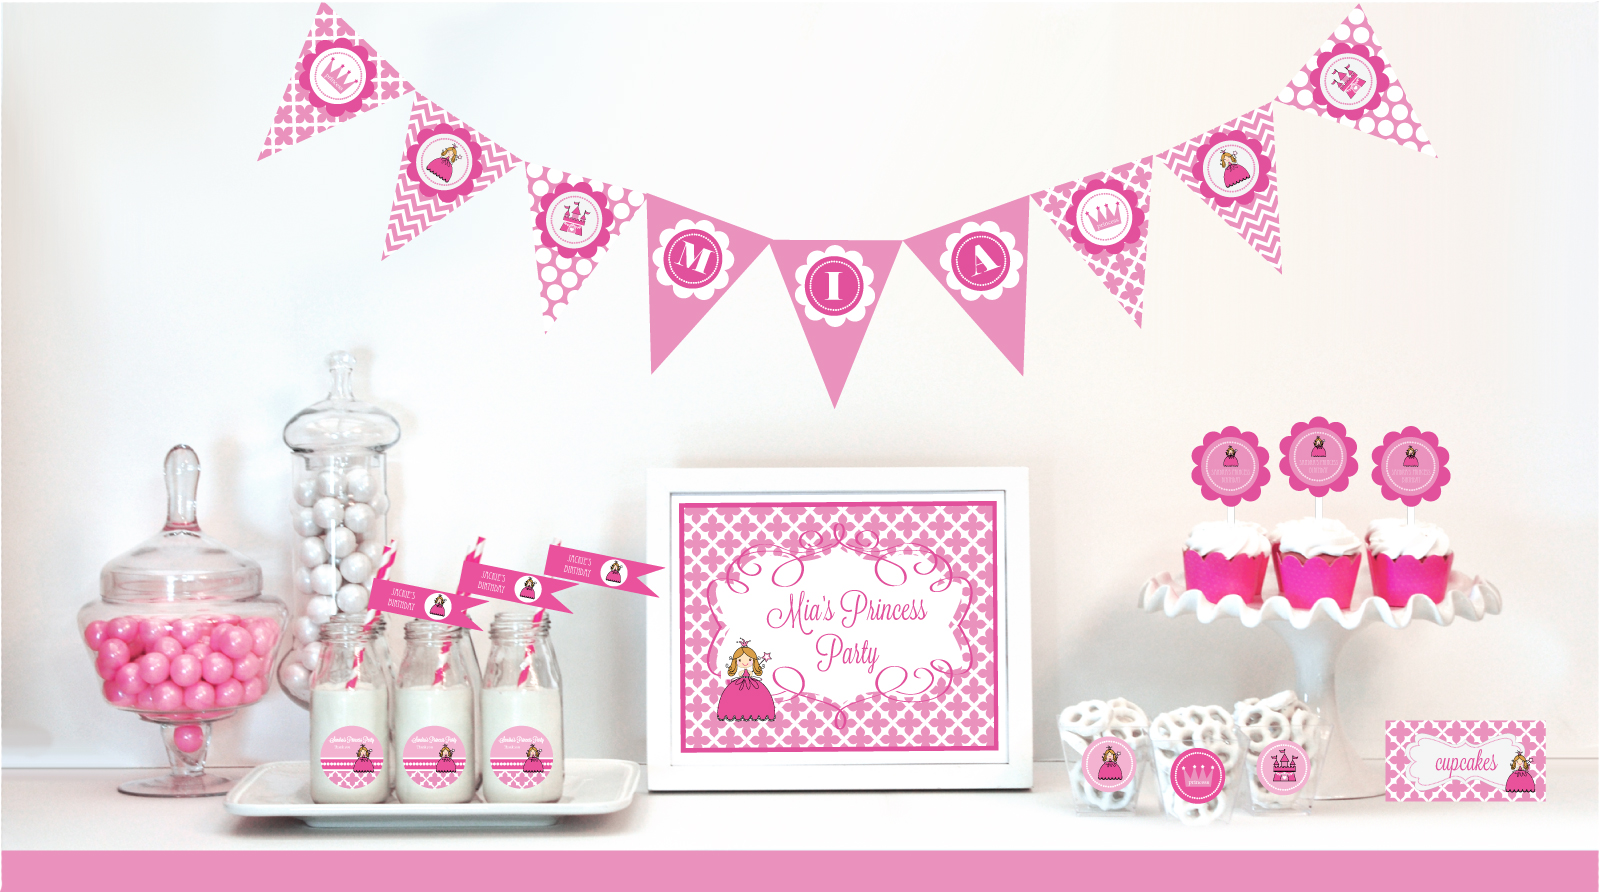 Princess Party Supplies and Favors